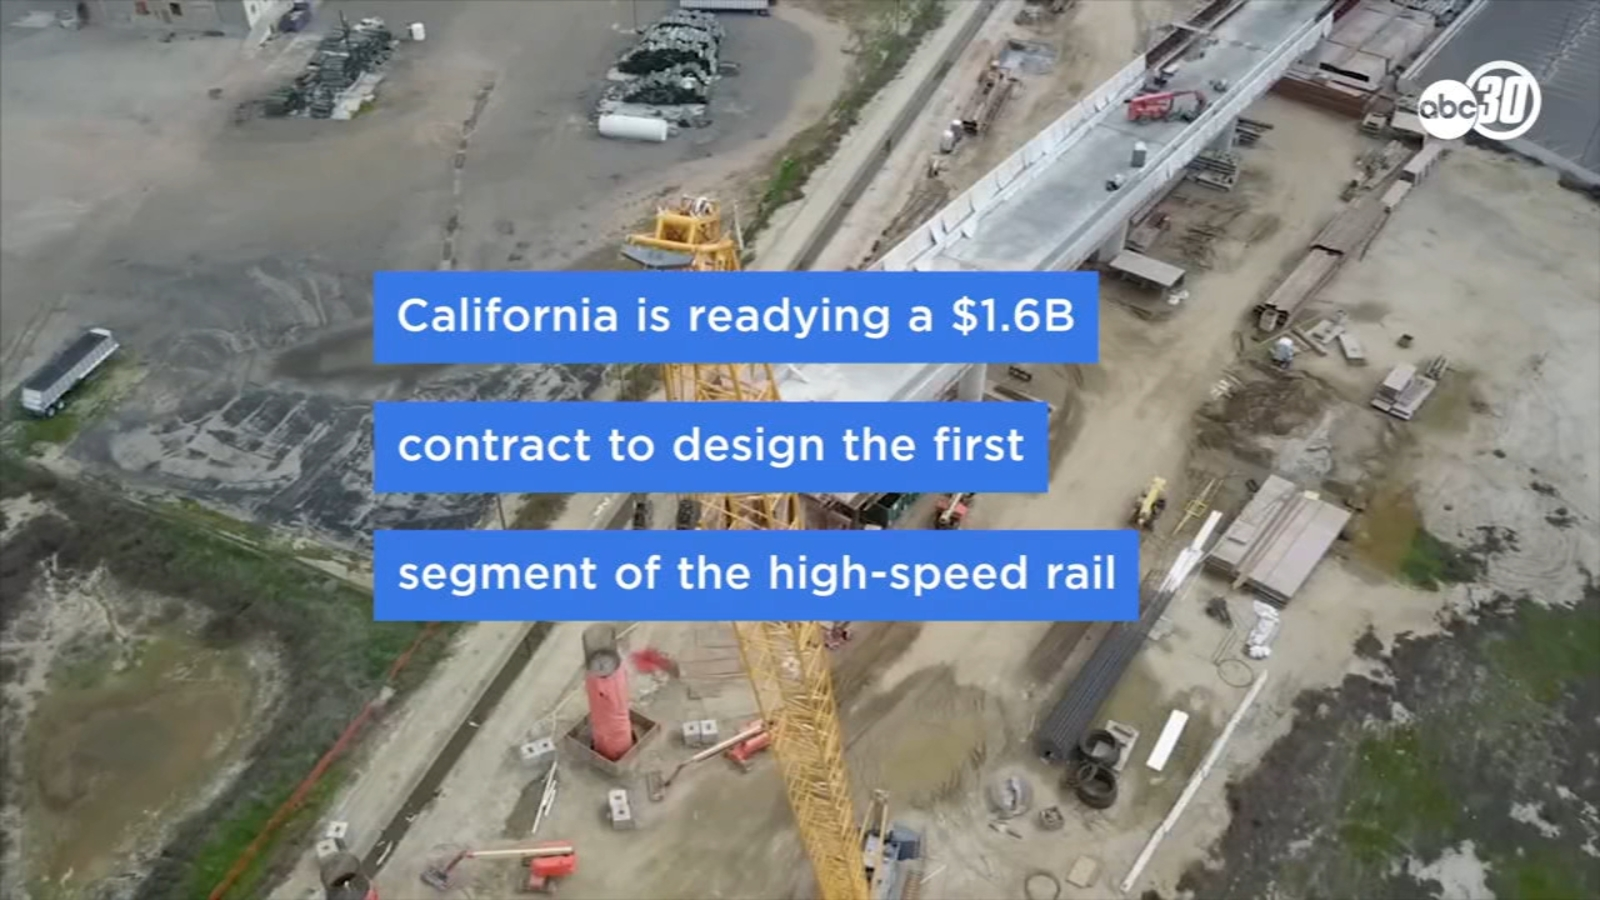 California High-Speed Rail: State readies $1.6 billion design contract